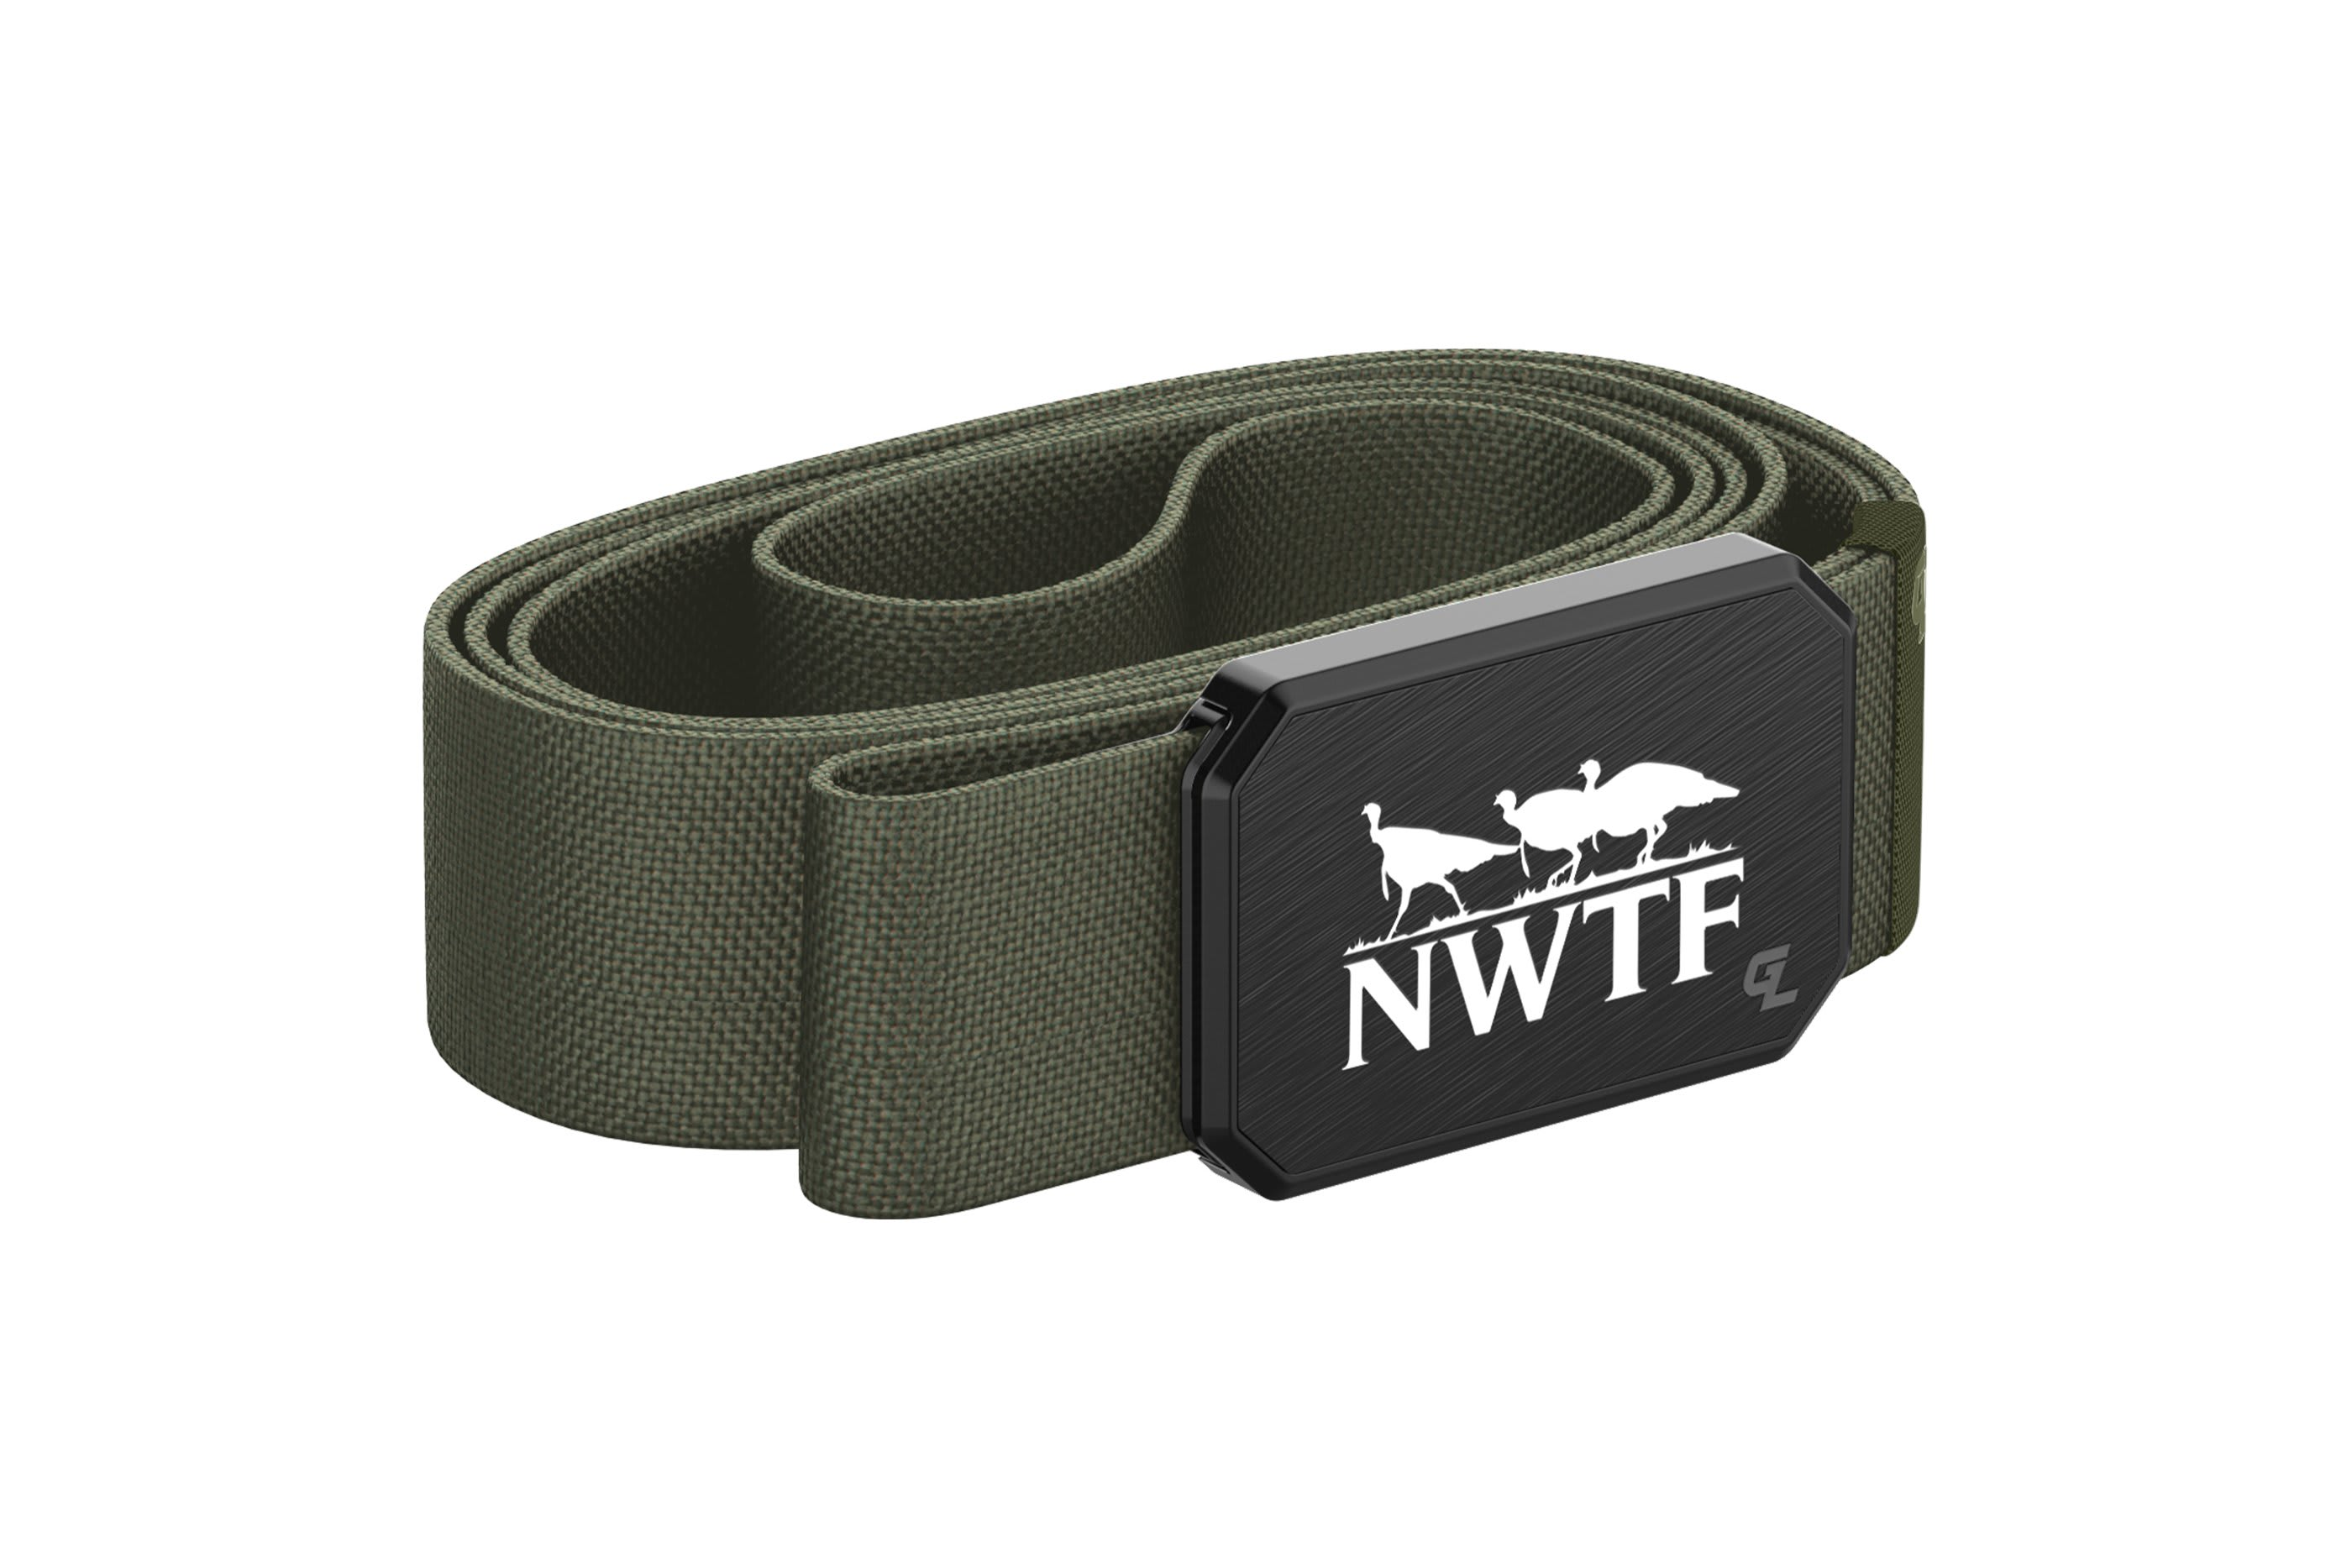 Groove Belt Black/Olive NWTF  viewed from side